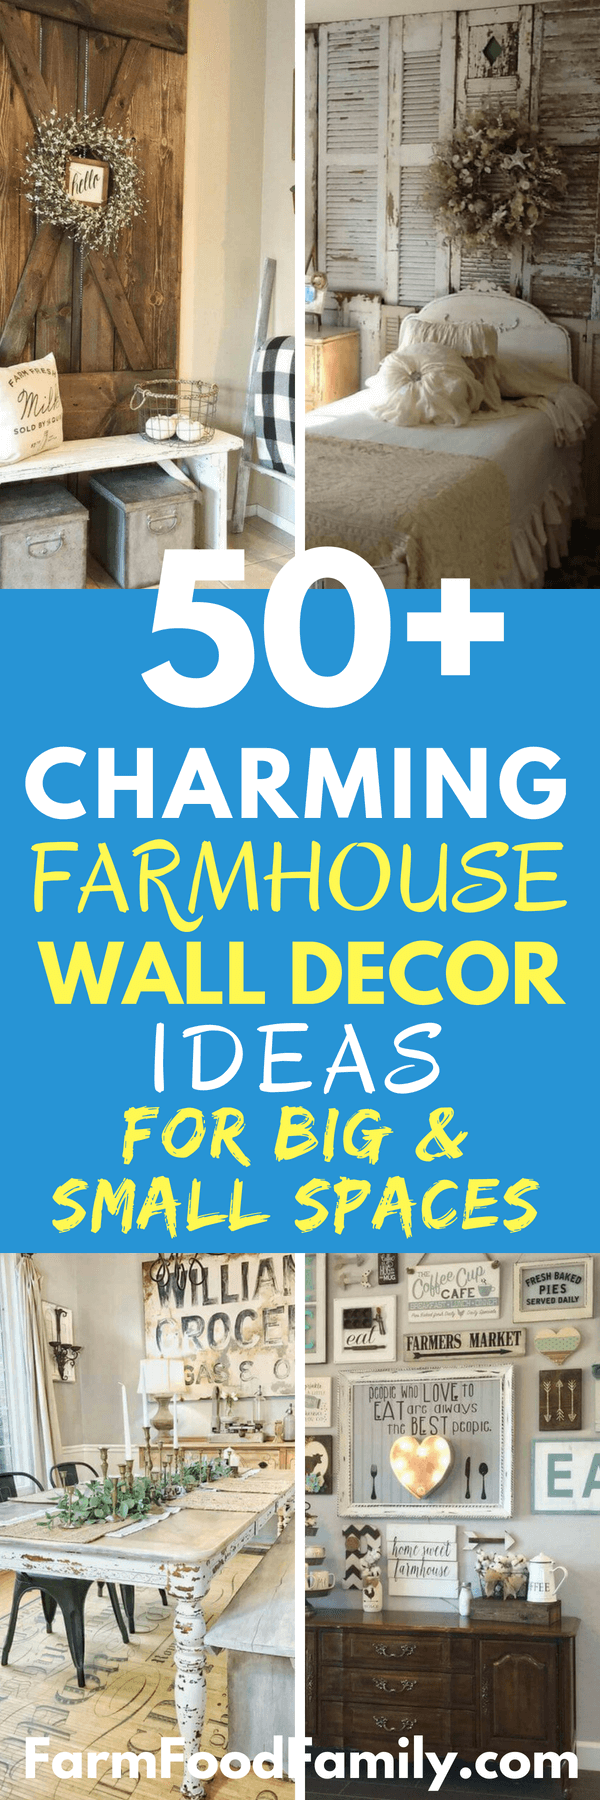 Lighting, mirrors, and shelves also offer solutions that are both pretty and practical. Get ready to cop some great farmhouse wall decor ideas. Ingenious lighting solutions? Check. Elegant architectural salvage projects? Check